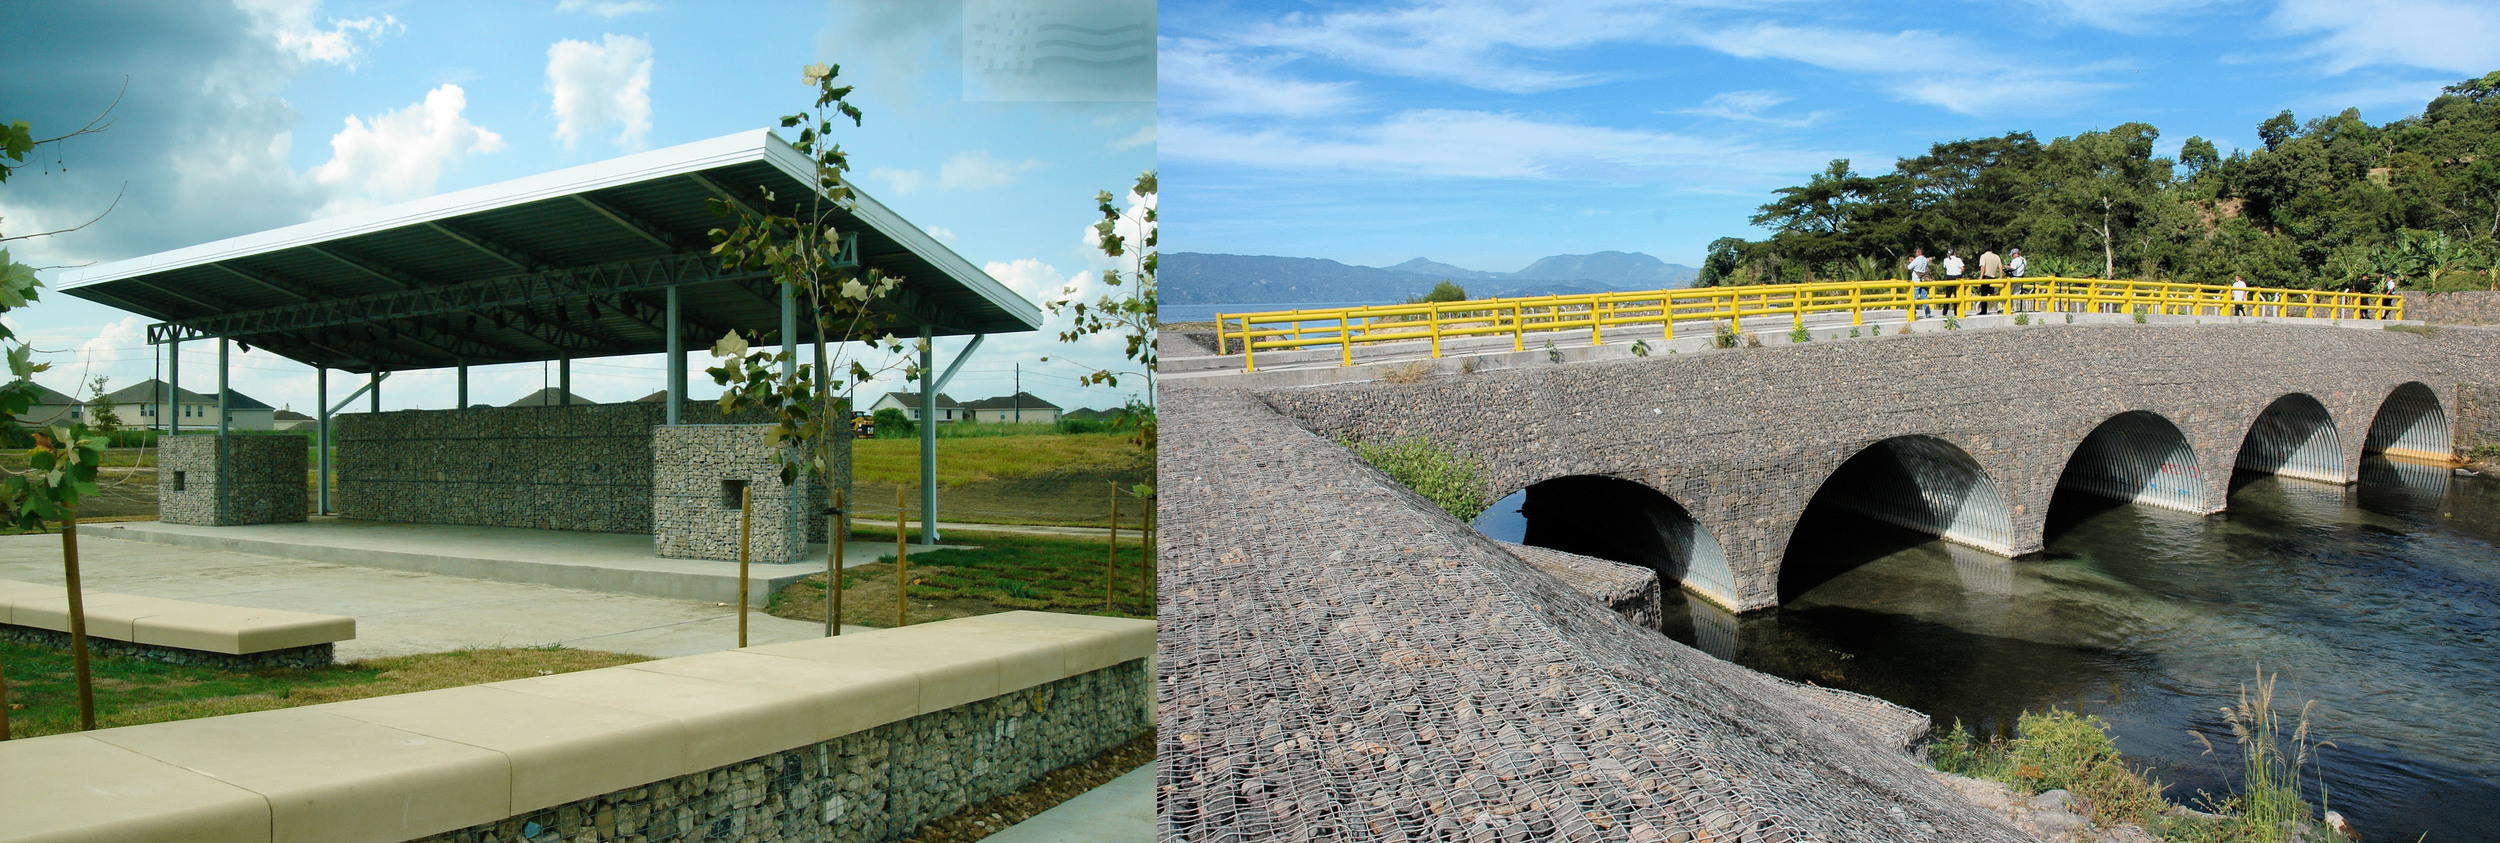 Architectural and landscape applications of the Modular Gabion System by C.E.Shepherd Company.